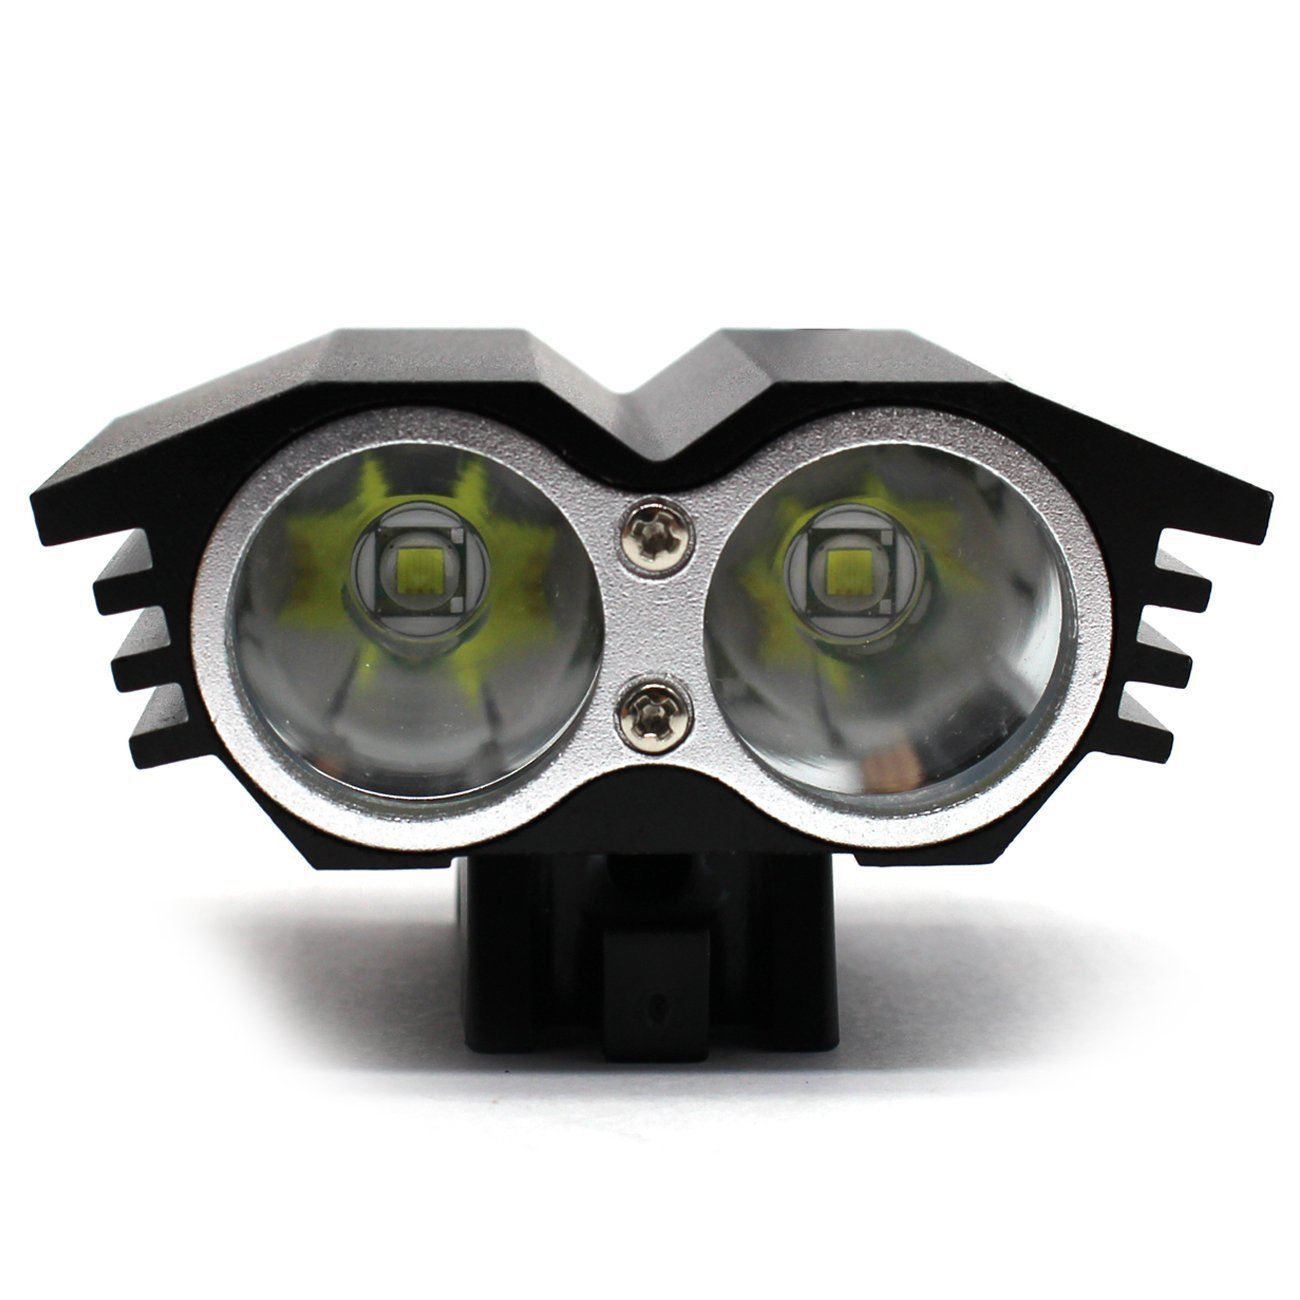 LED T6 M2 Bicycle Lights Two Lights Owls Strong Light Charging Front Mounted Headlamps